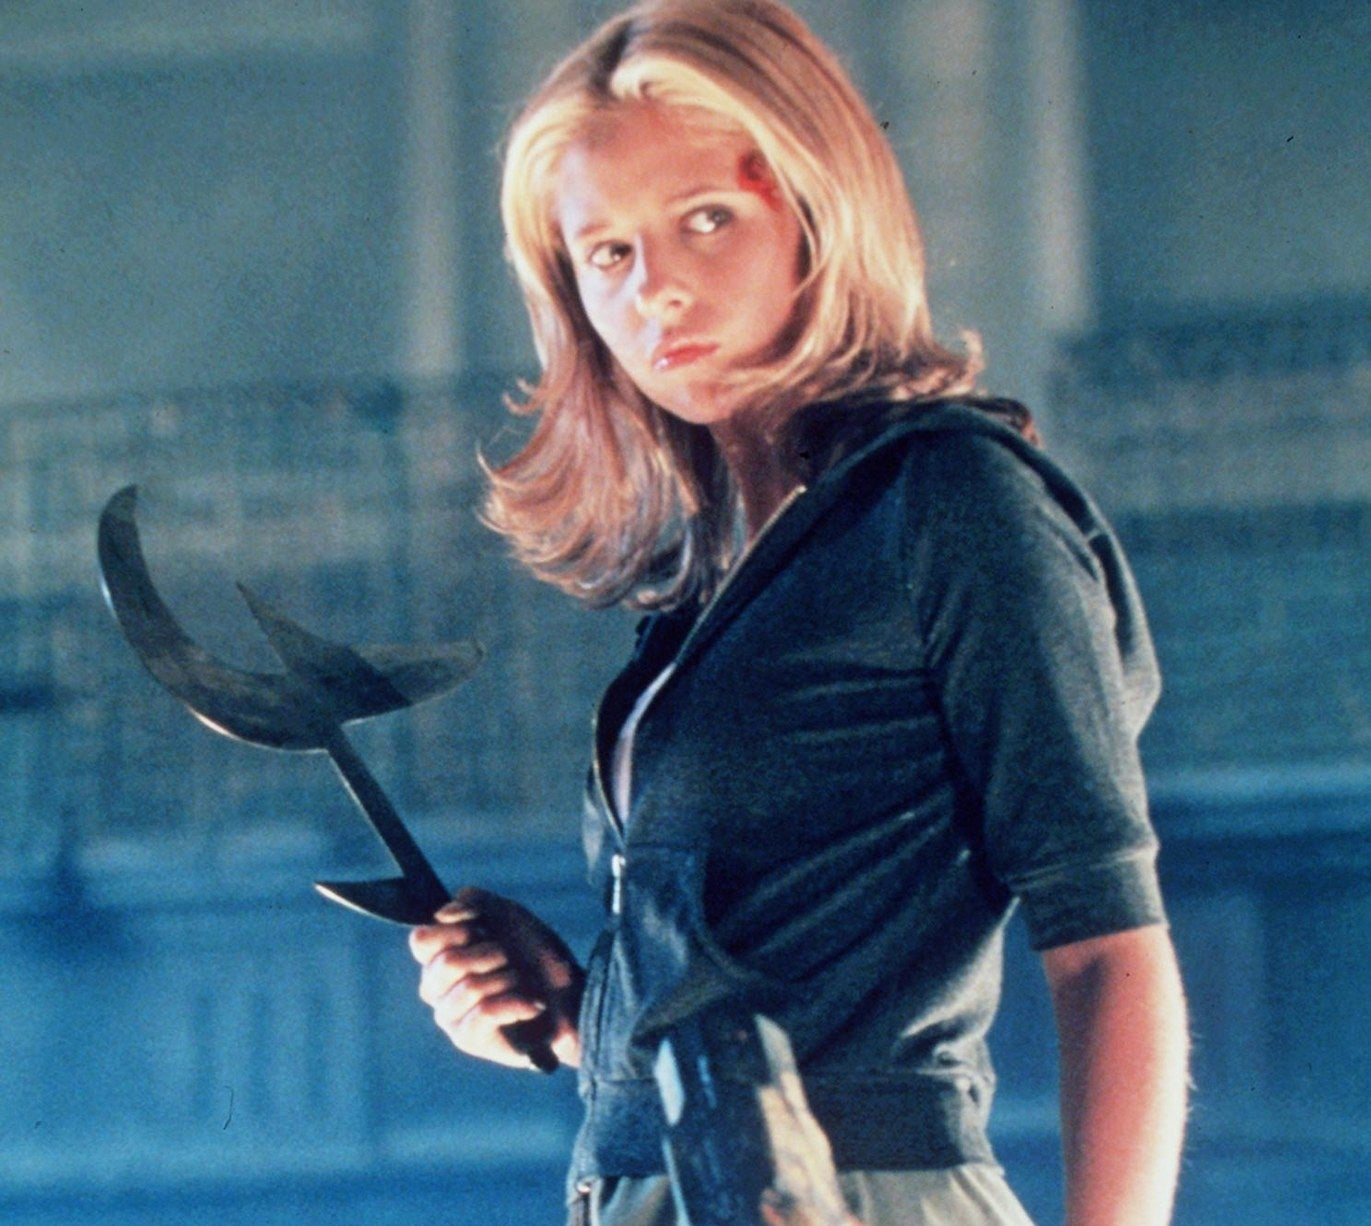 To be clear, this  Buffy  reboot still has many hurdles to clear before becoming a reality: There's no script, there's no network or streaming service attached to distribute it, and there are no actors signed on to star in it.